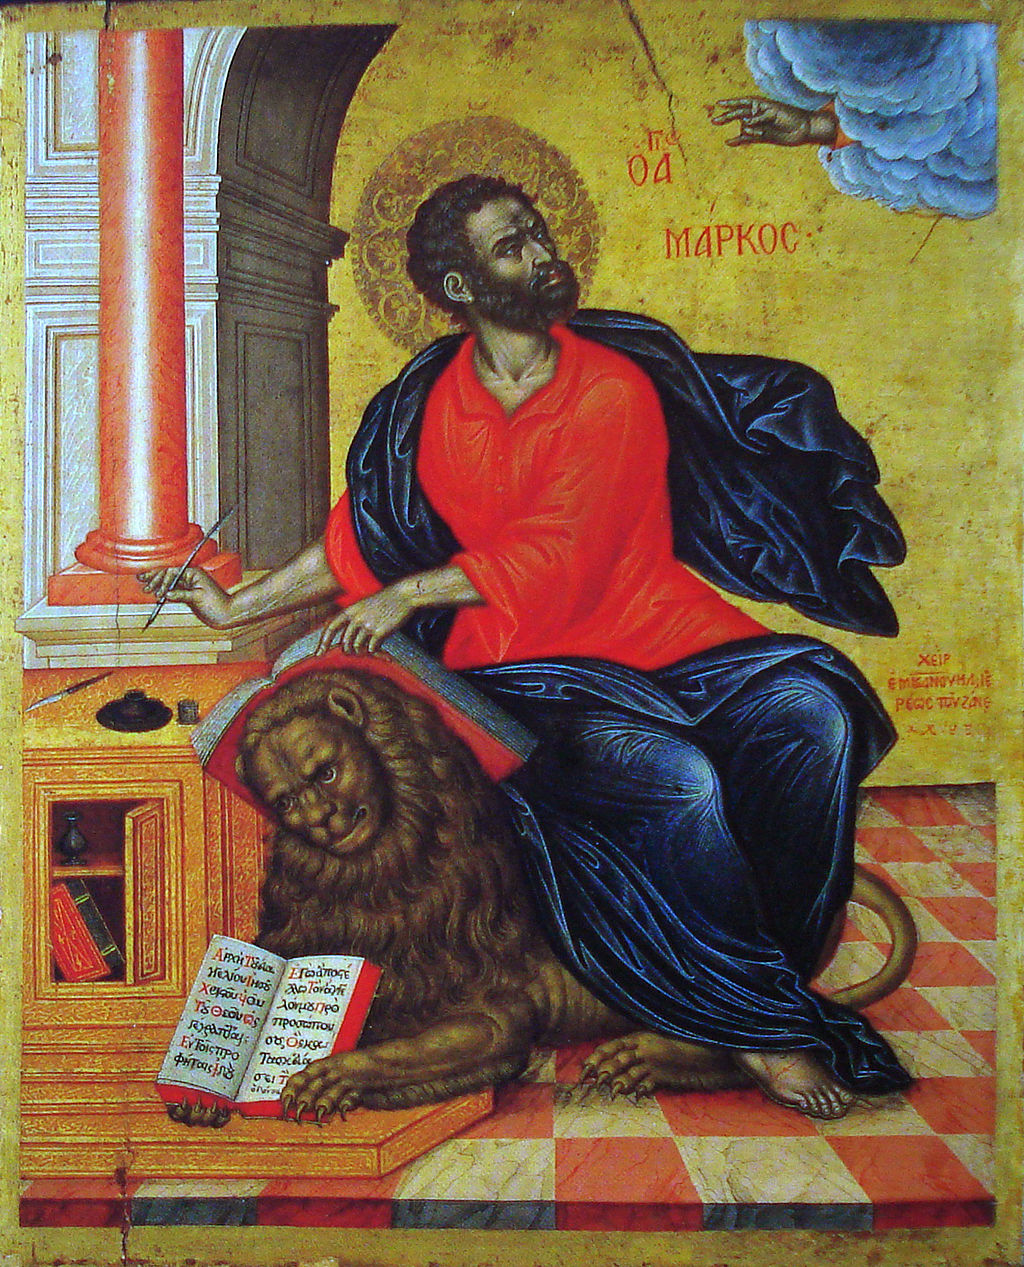 1024px-Emmanuel_Tzanes_-_St._Mark_the_Evangelist_-_1657